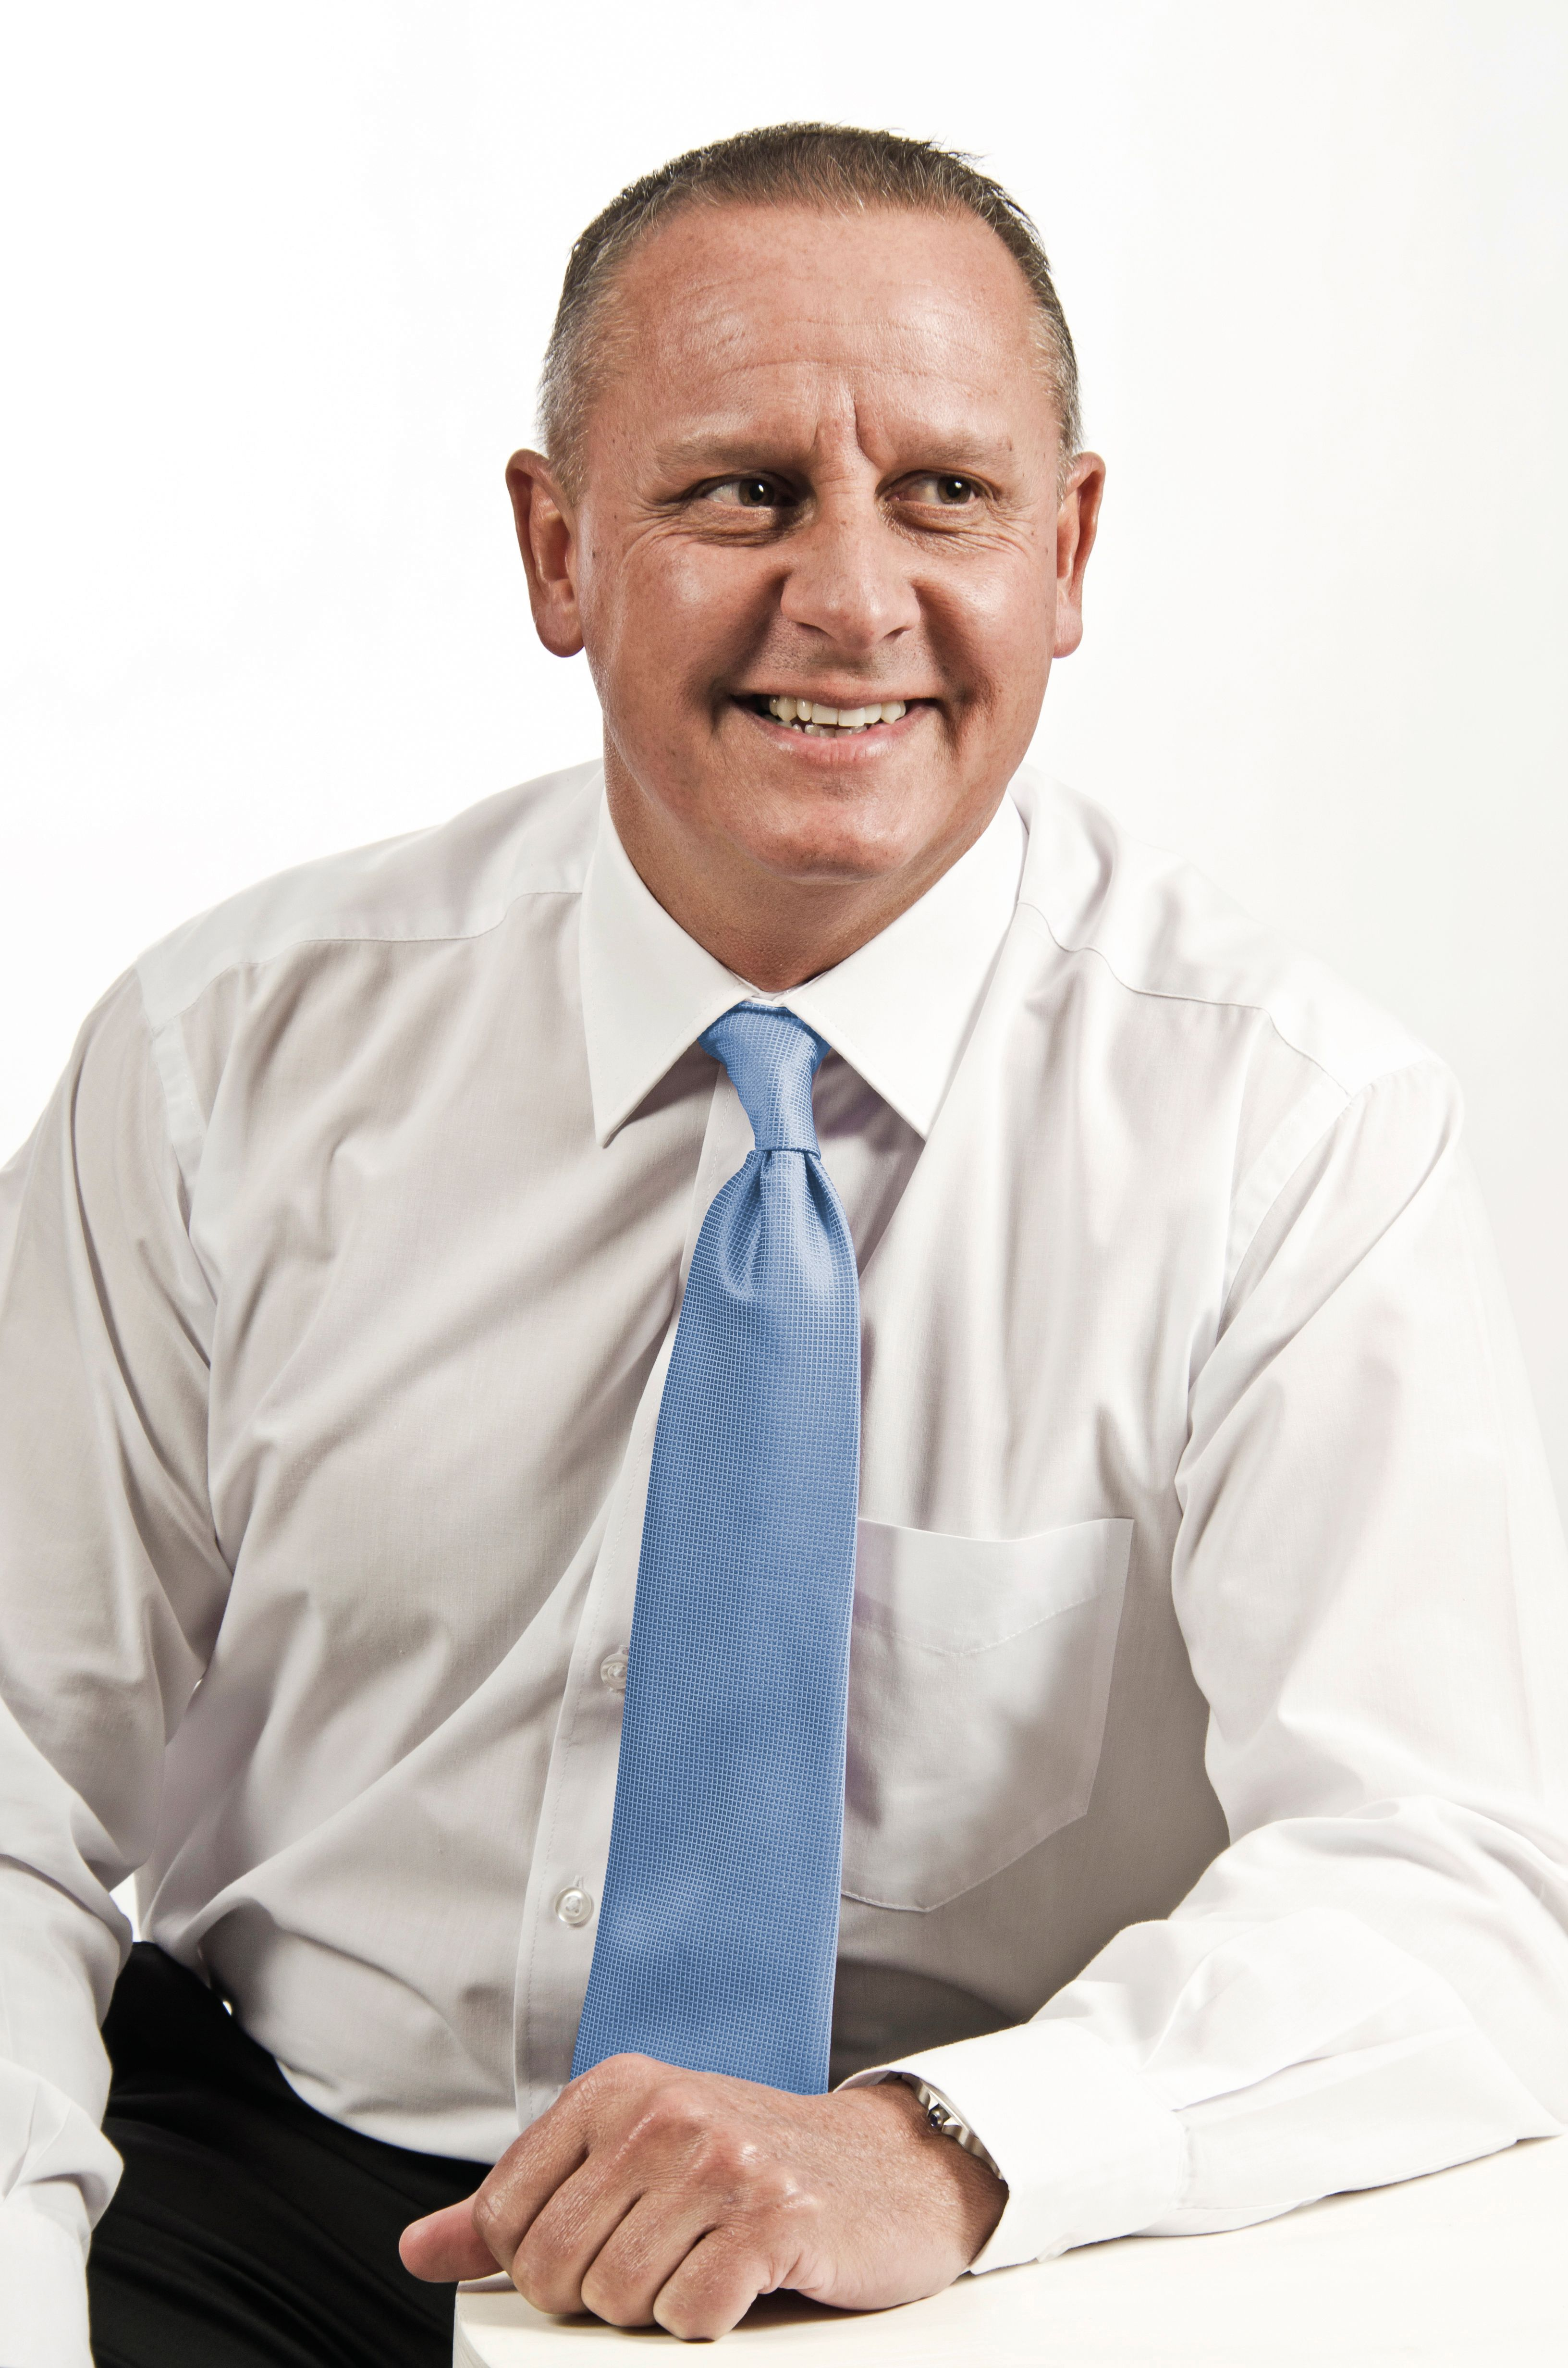 Phil Roux with blue tie